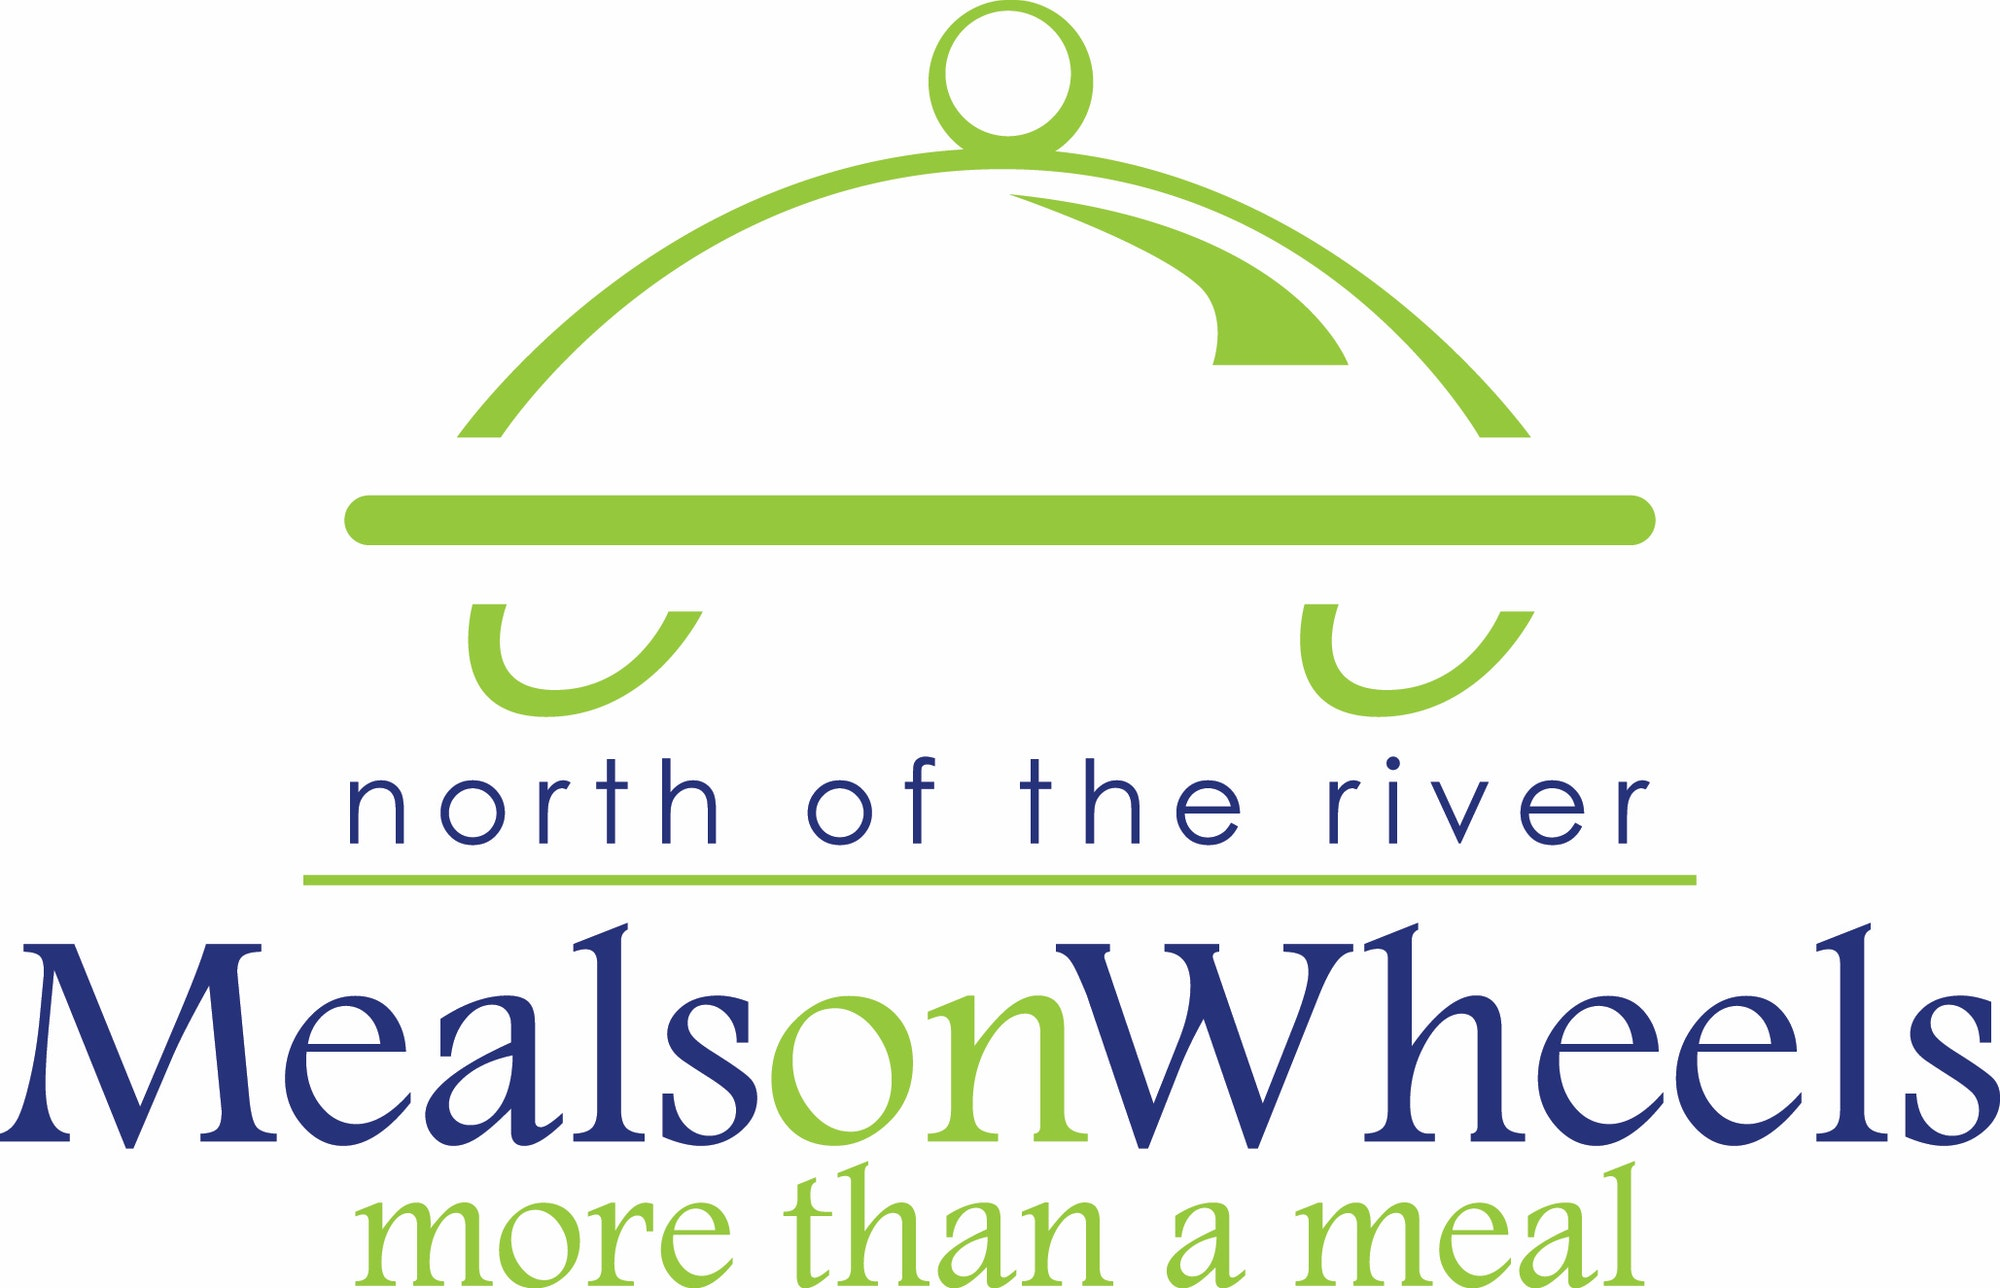 Dining tray on wheels, Meals on Wheels text